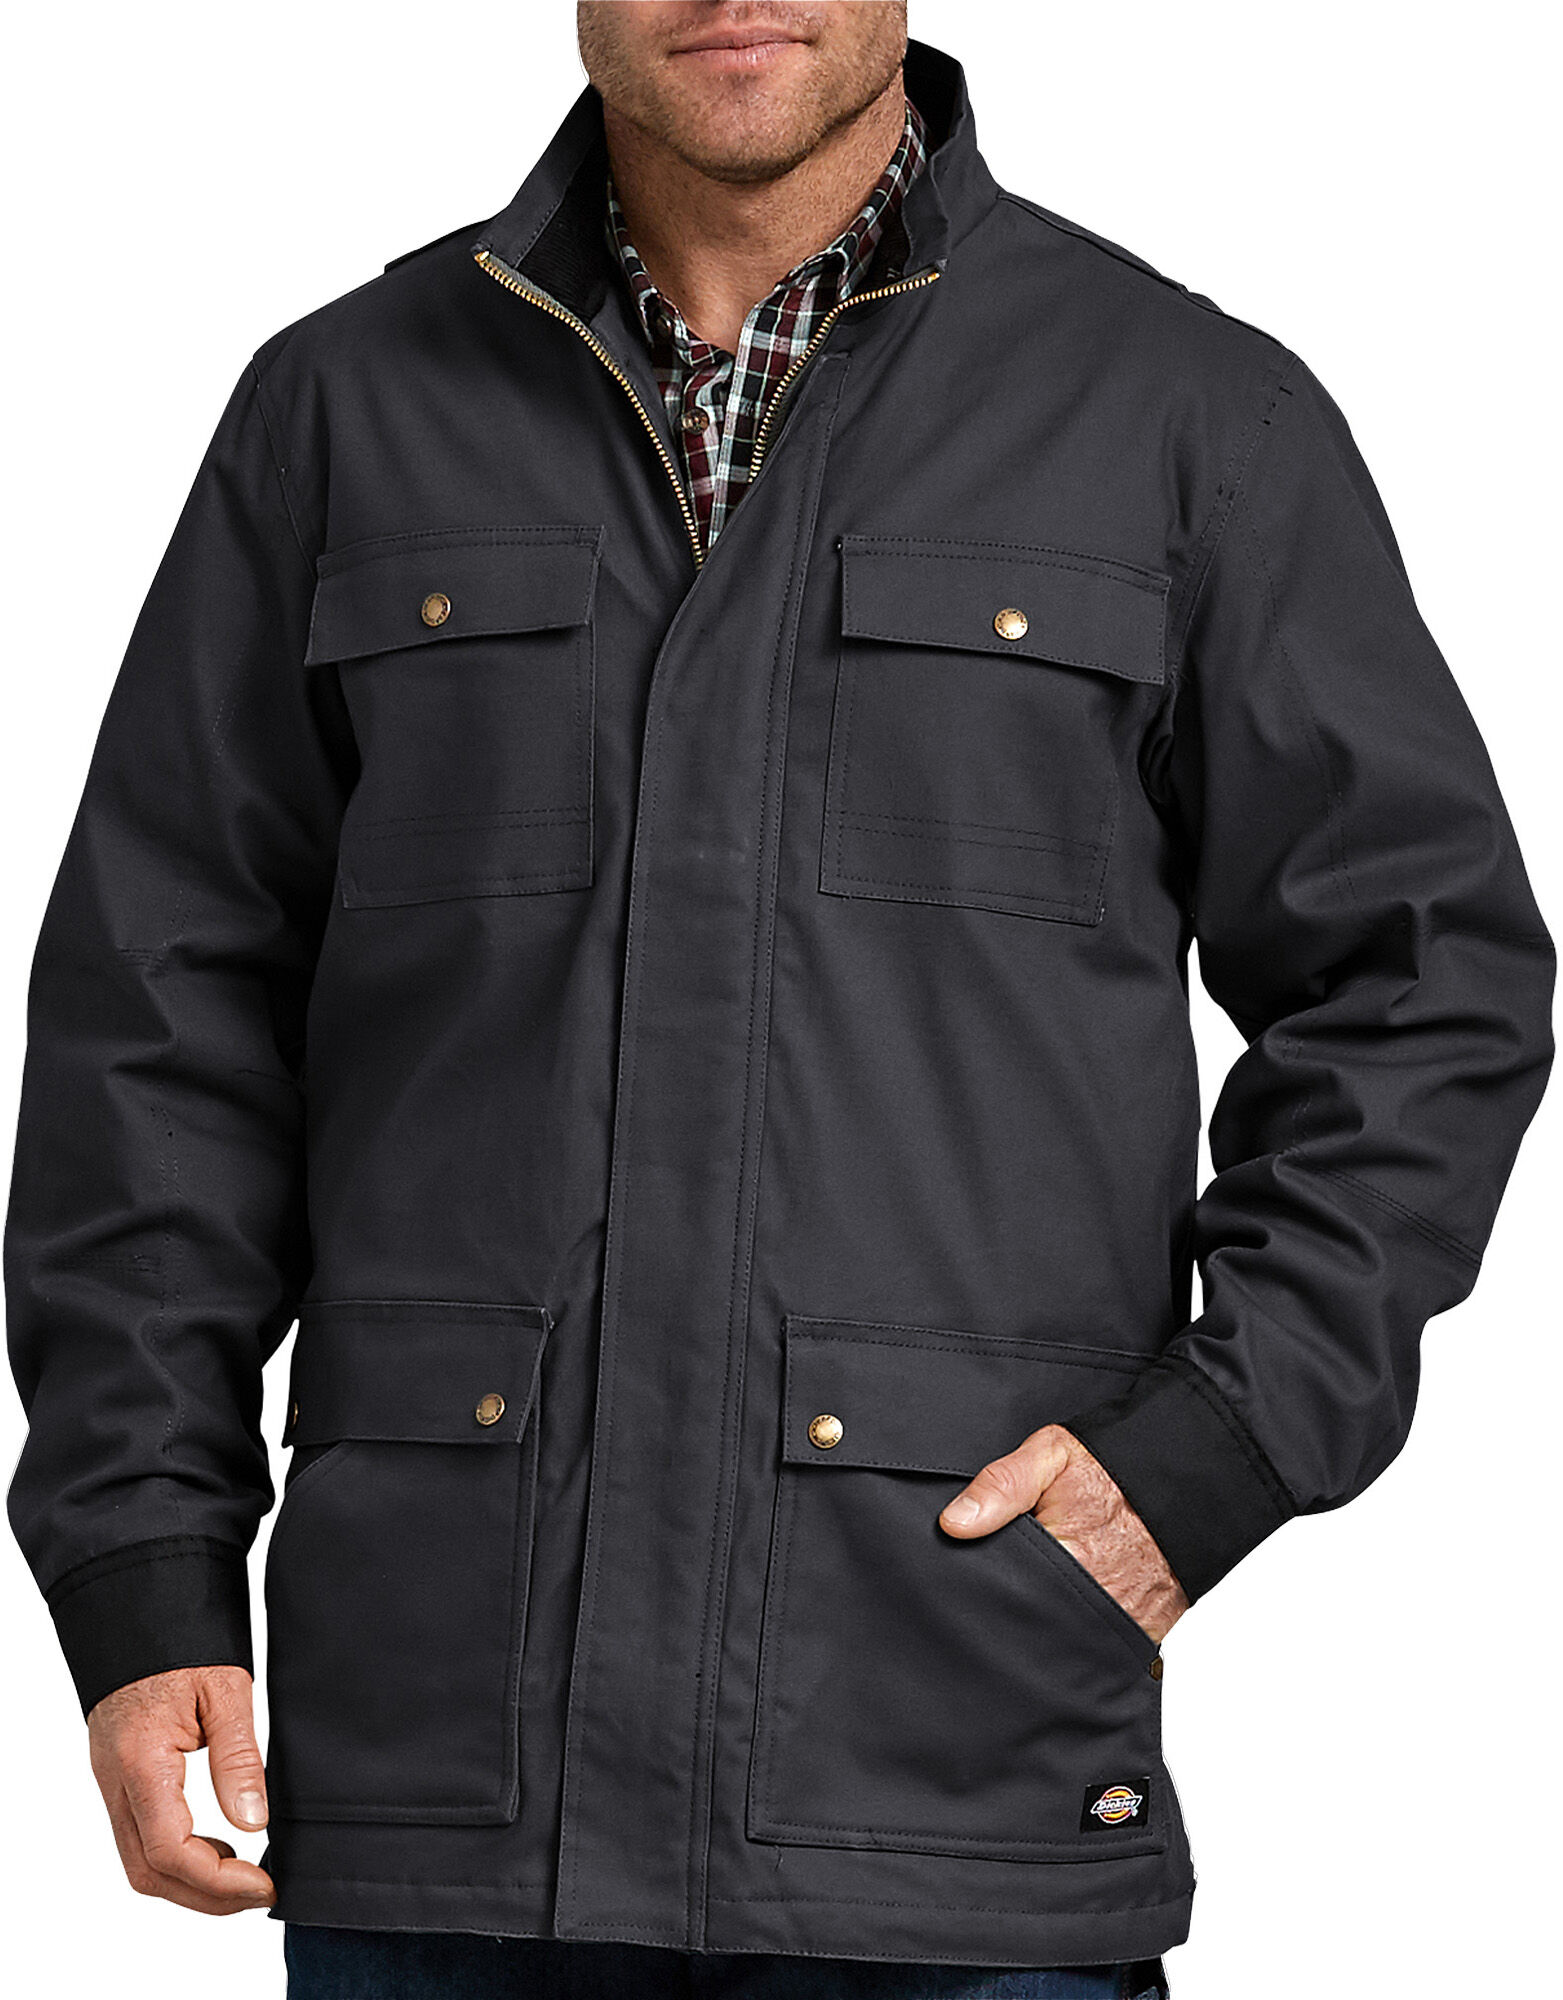 Dickies Mens Sanded Duck Flex Mobility Jacket Quilted Jacket